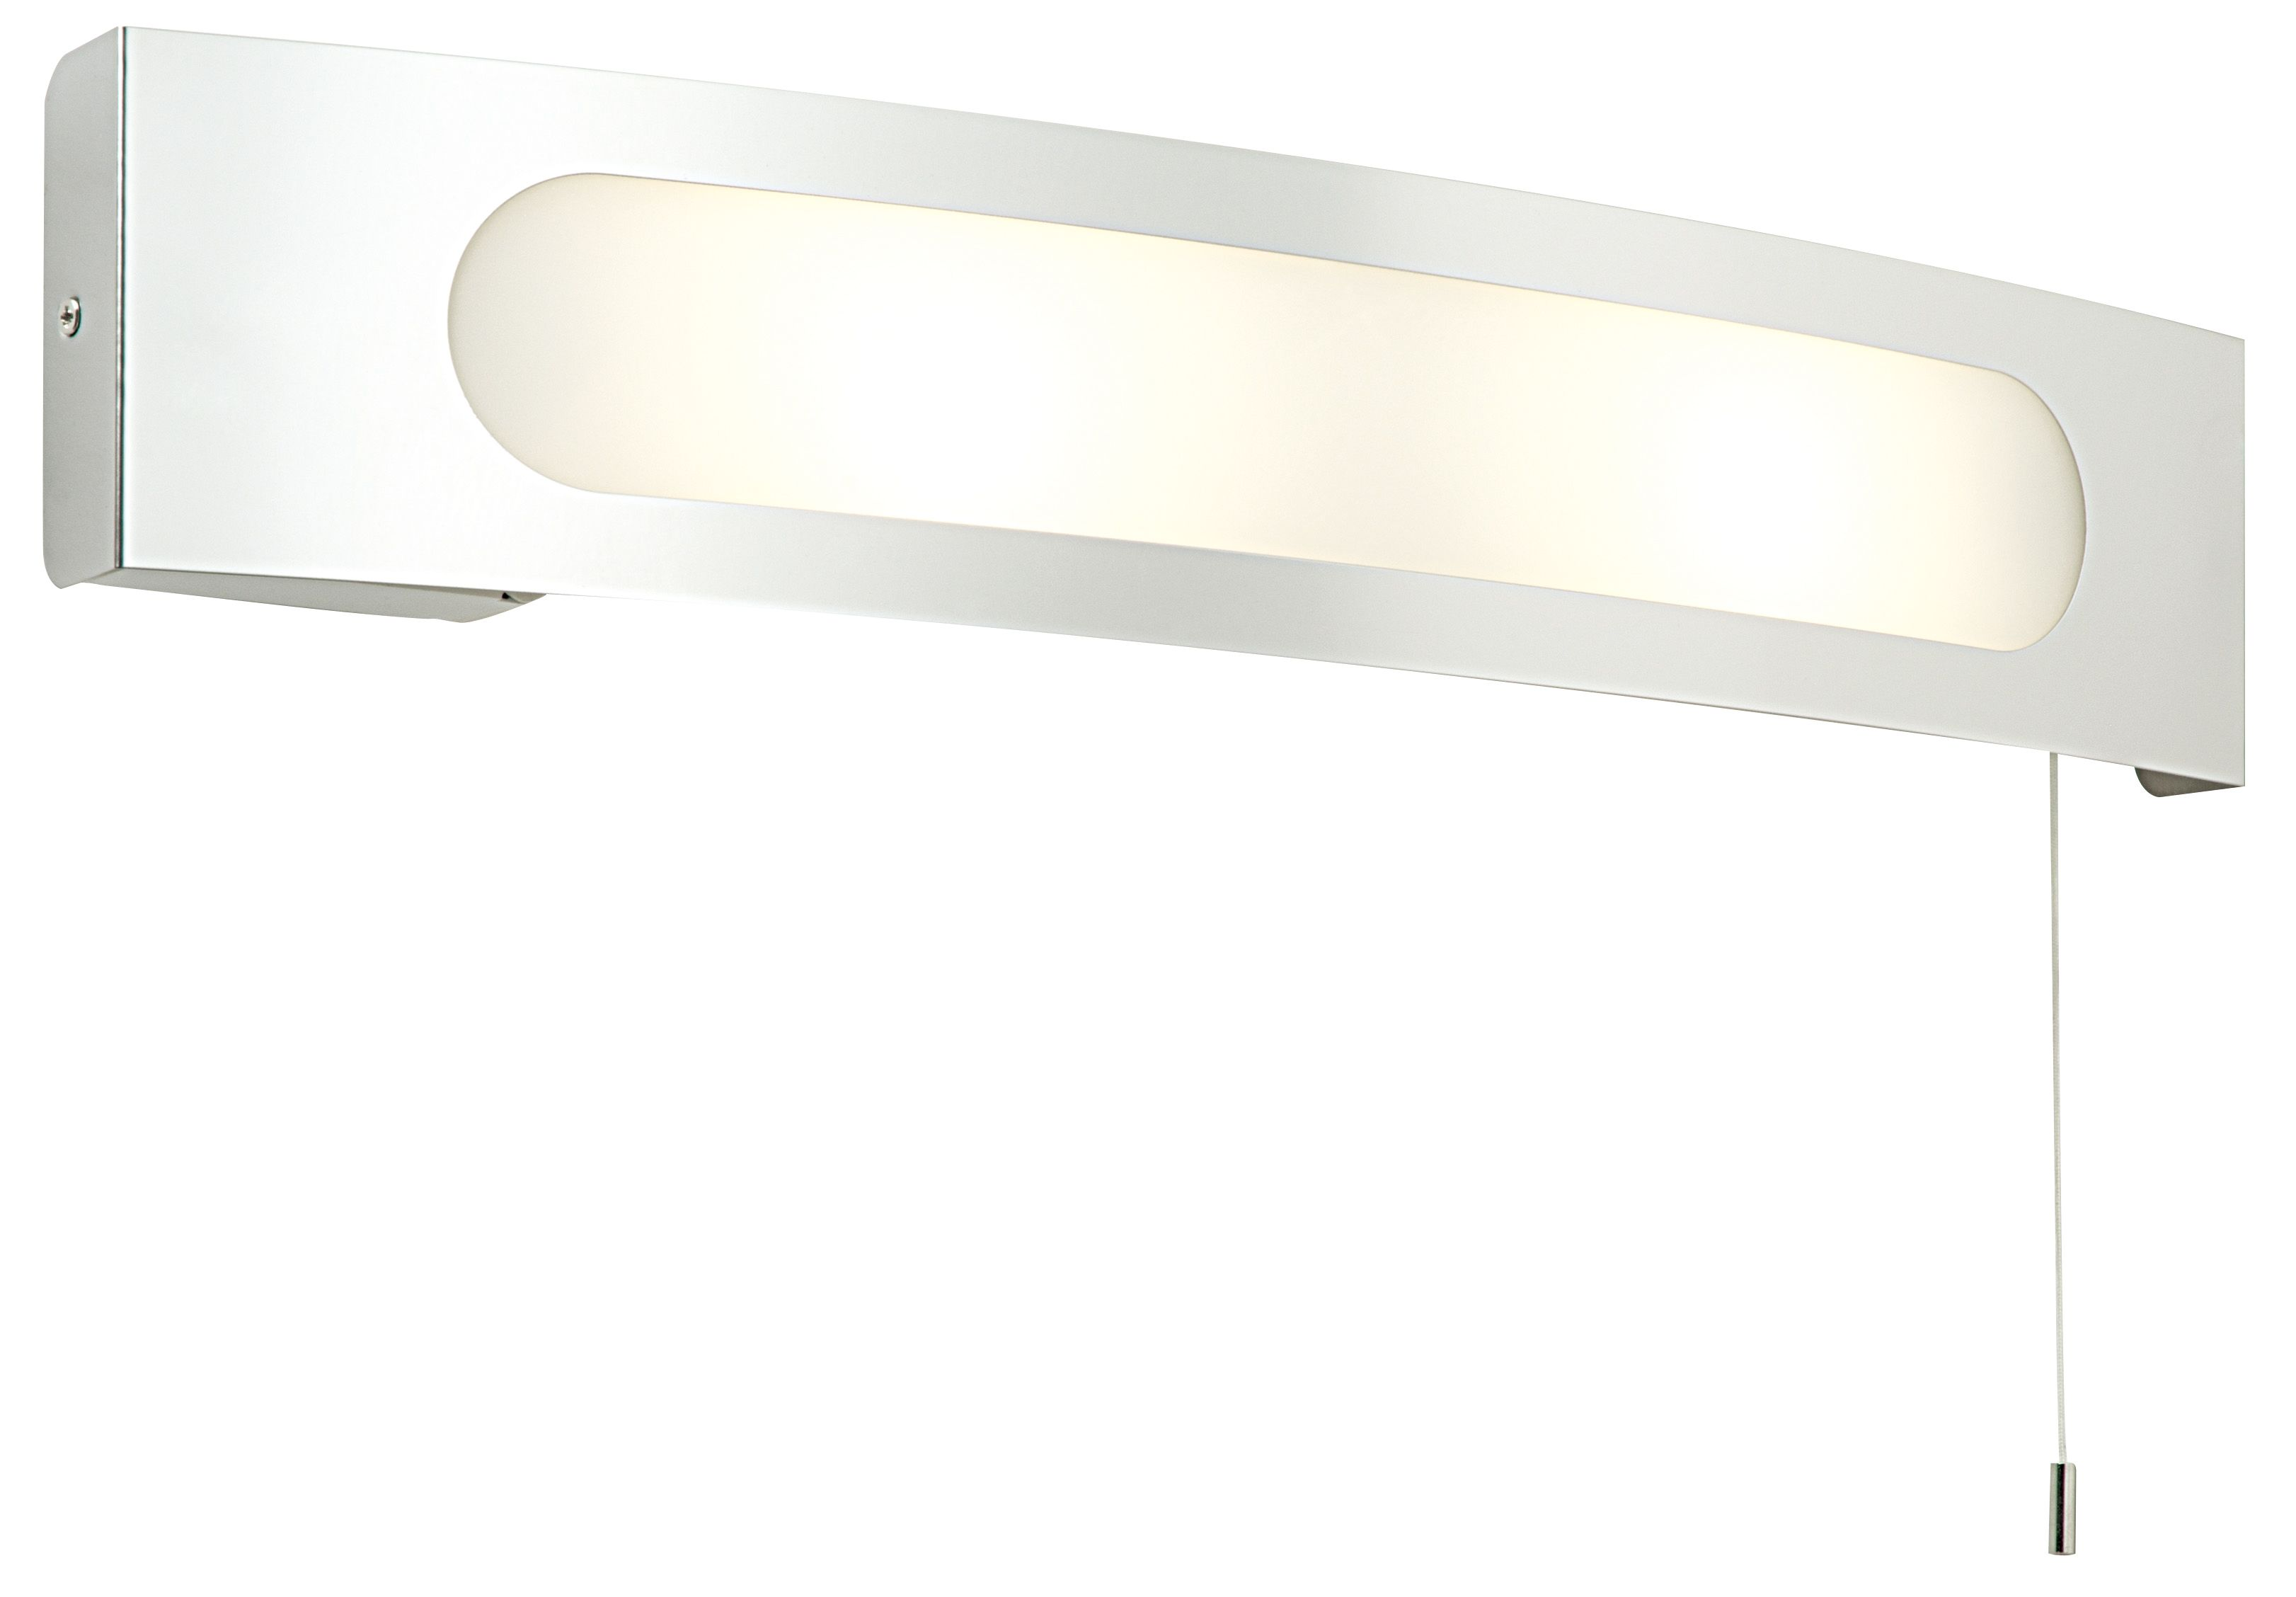 Wall Light With Shaver Socket: Bathroom Shaver Convesso 25W 39148